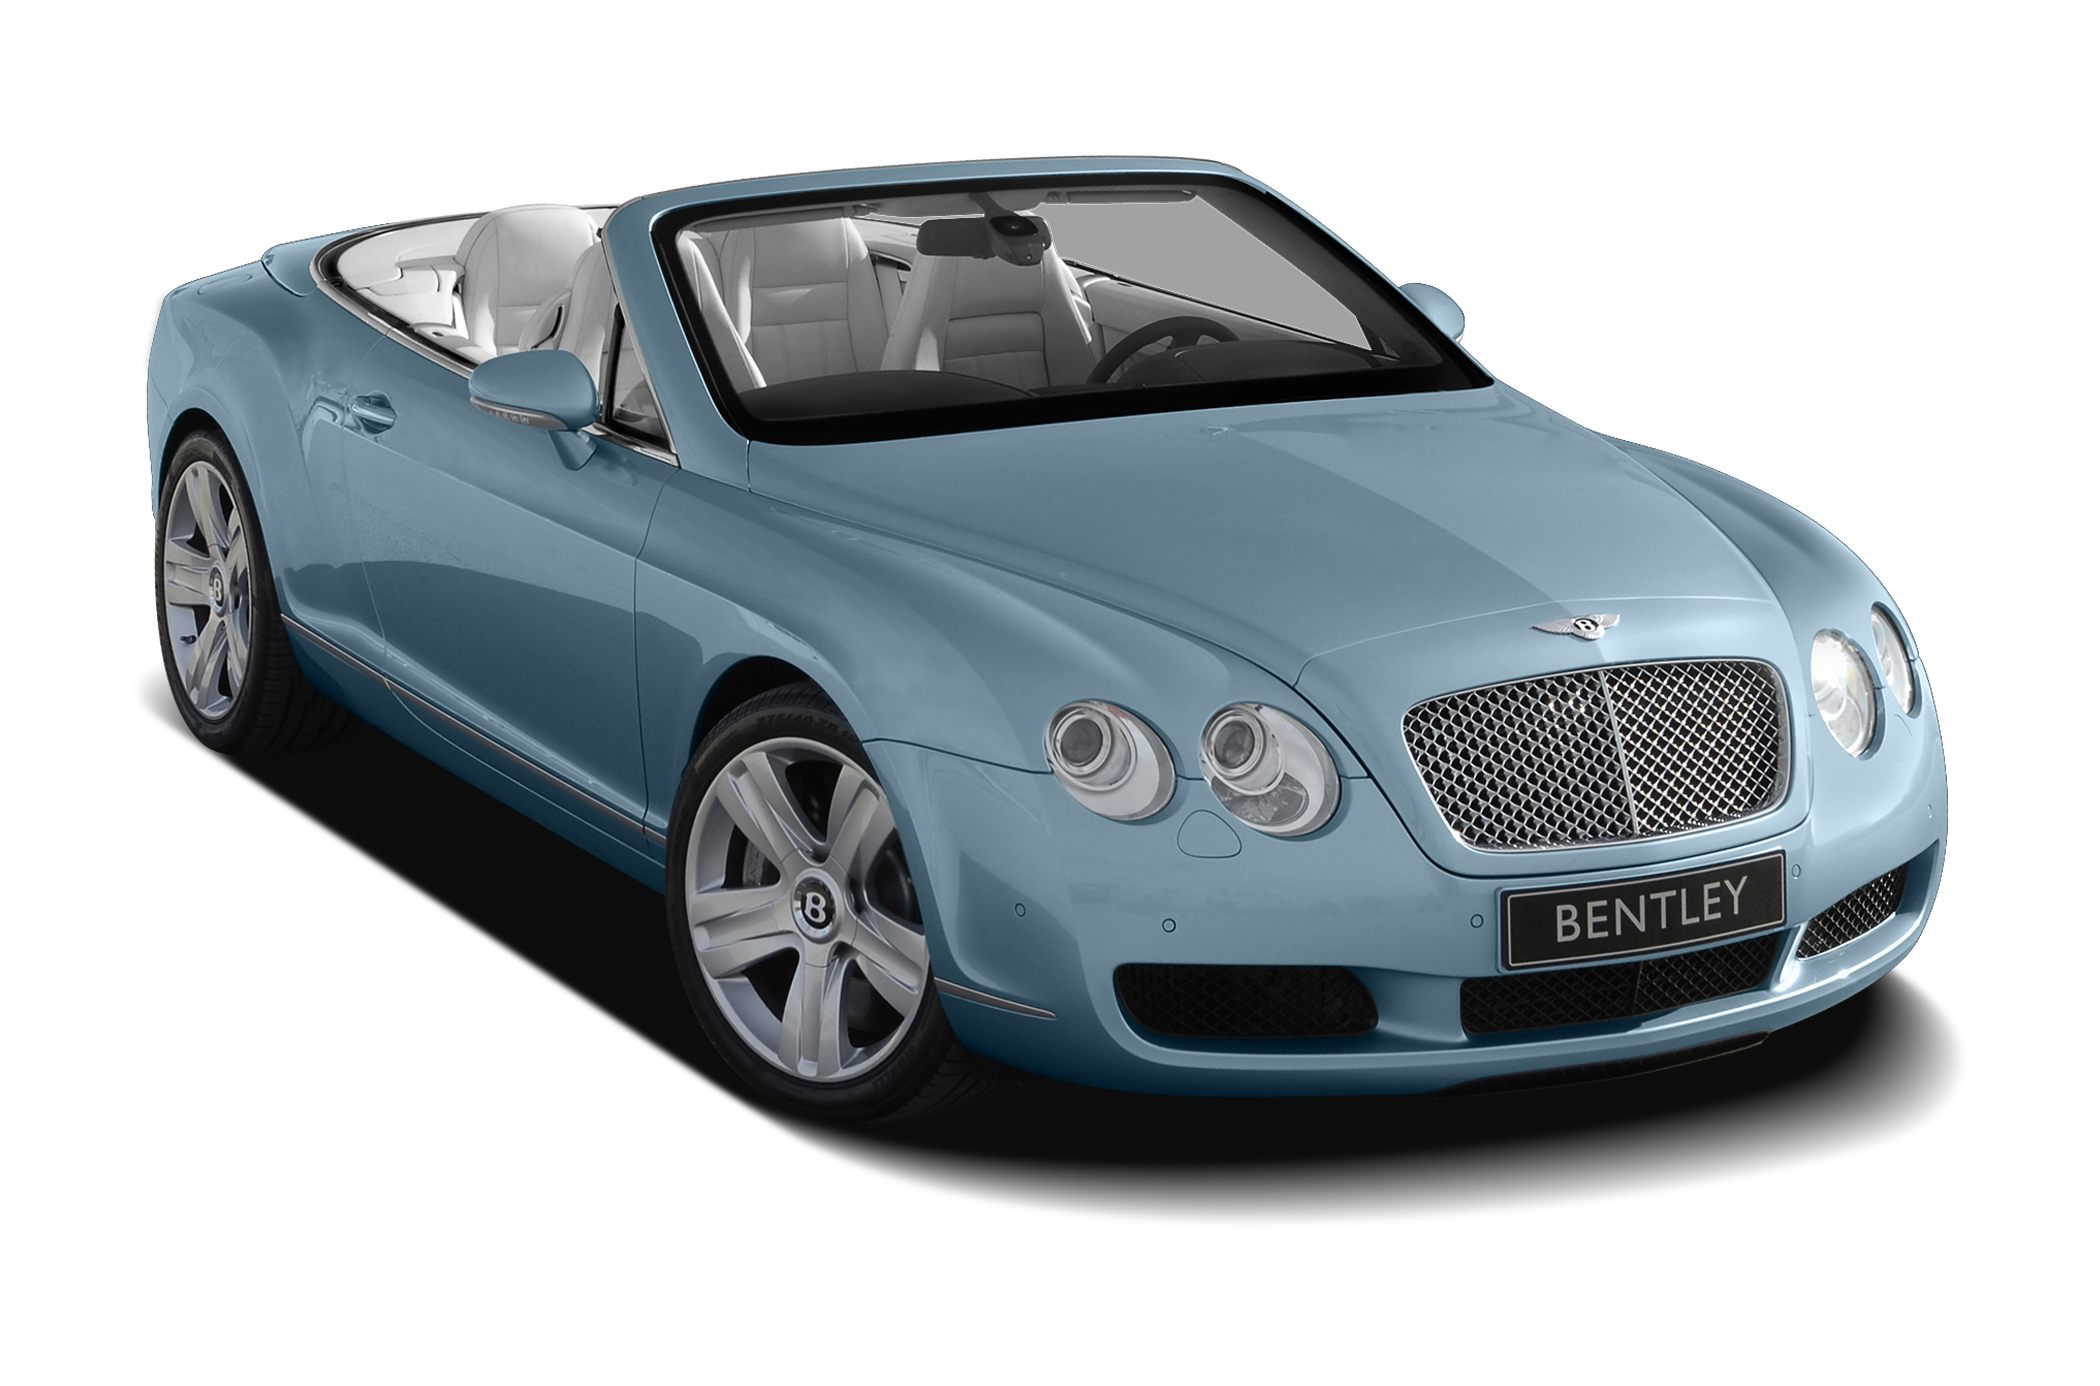 2007 Bentley Continental GTC Safety Recalls